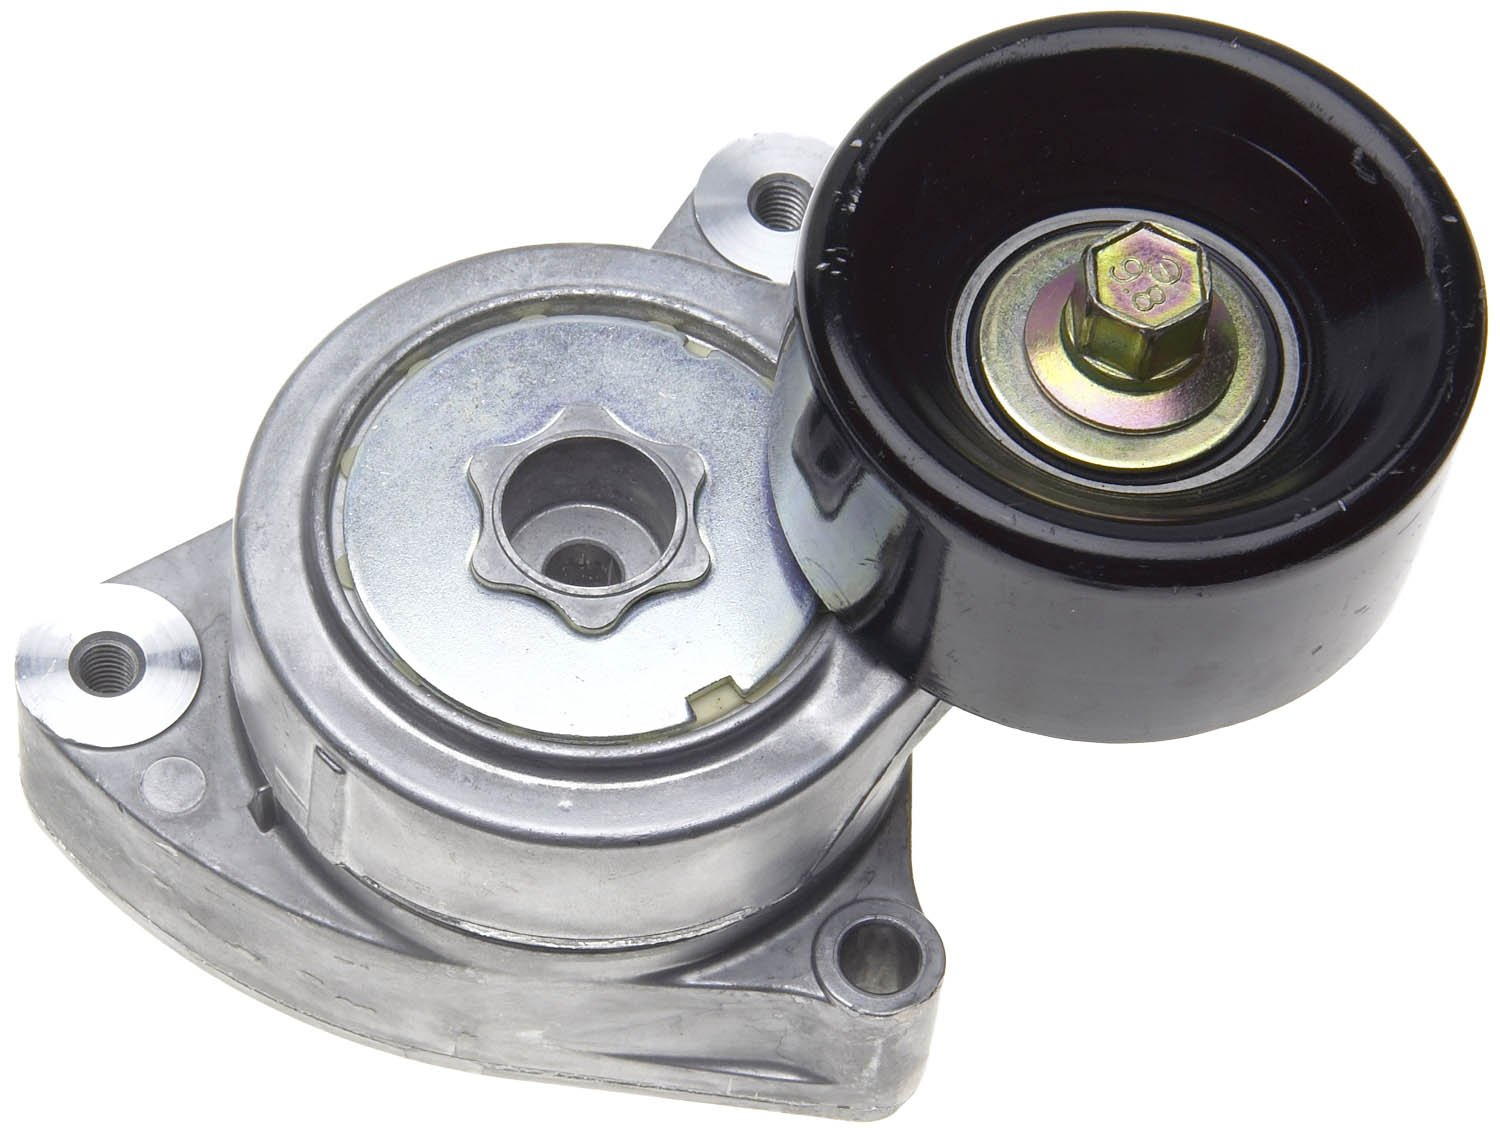 ACDelco 38278 Professional Automatic Belt Tensioner and Pulley Assembly ac38278.8920